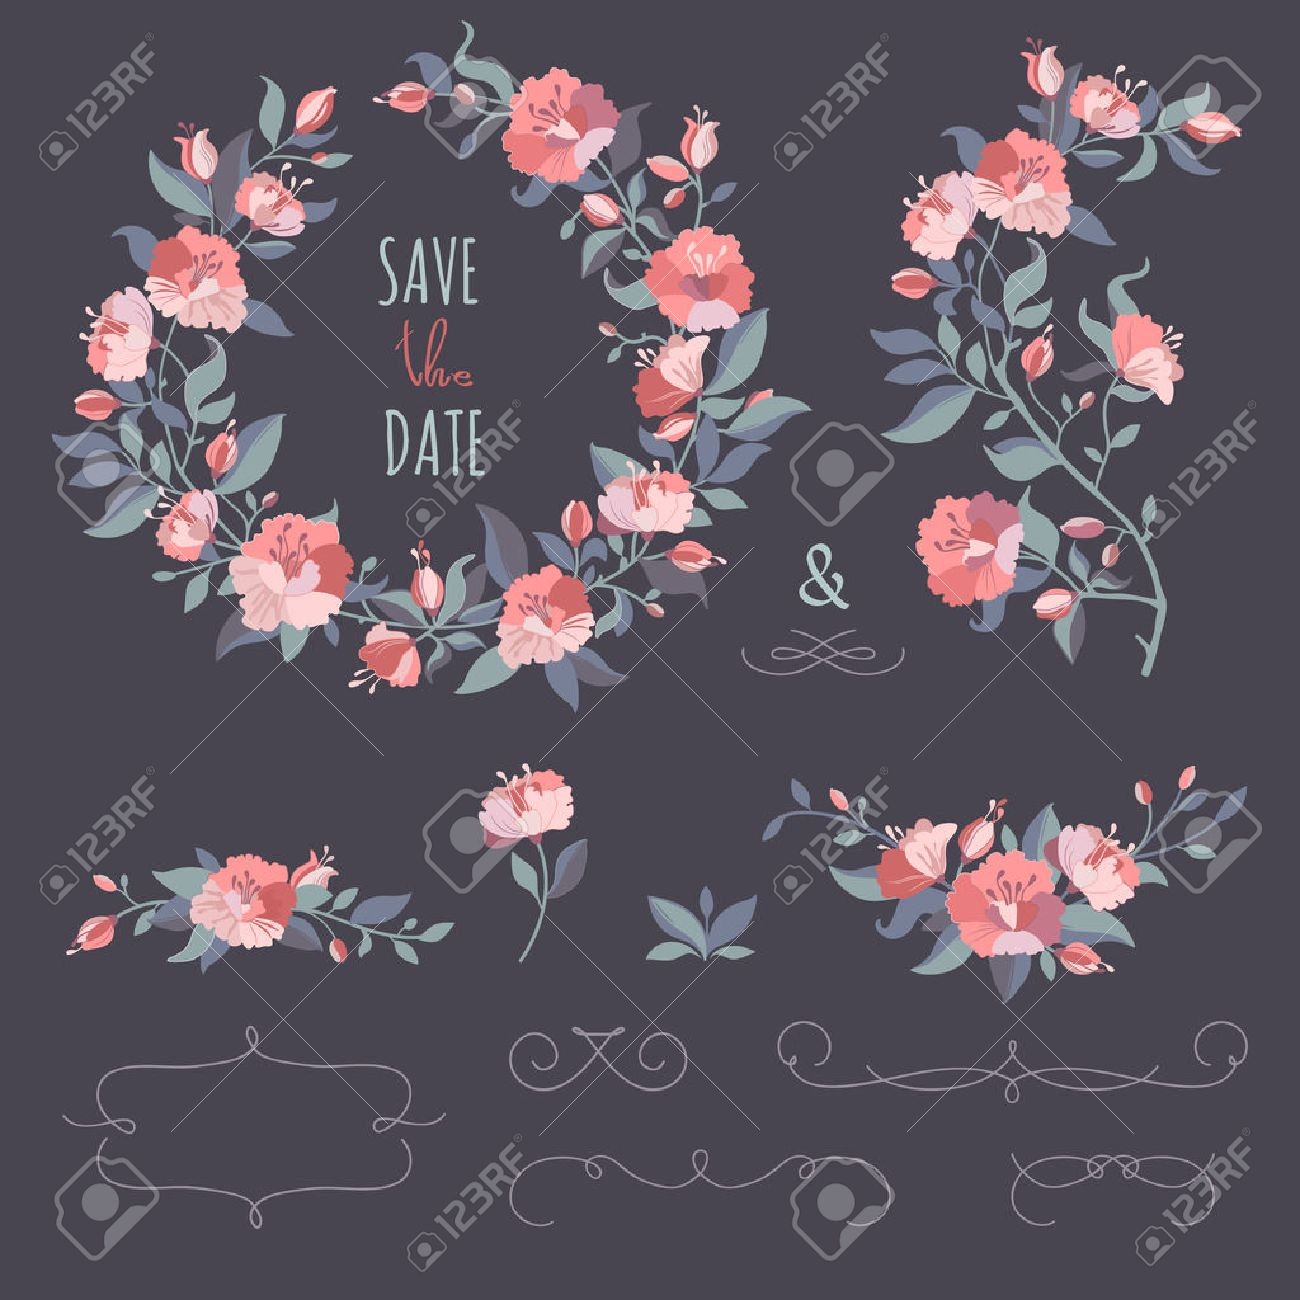 Collection of floral wreaths, twigs, border. Set of hand-drawing calligraphic borders. Decorative elements for design invitation, cards. Floral vector graphic. - 49870892